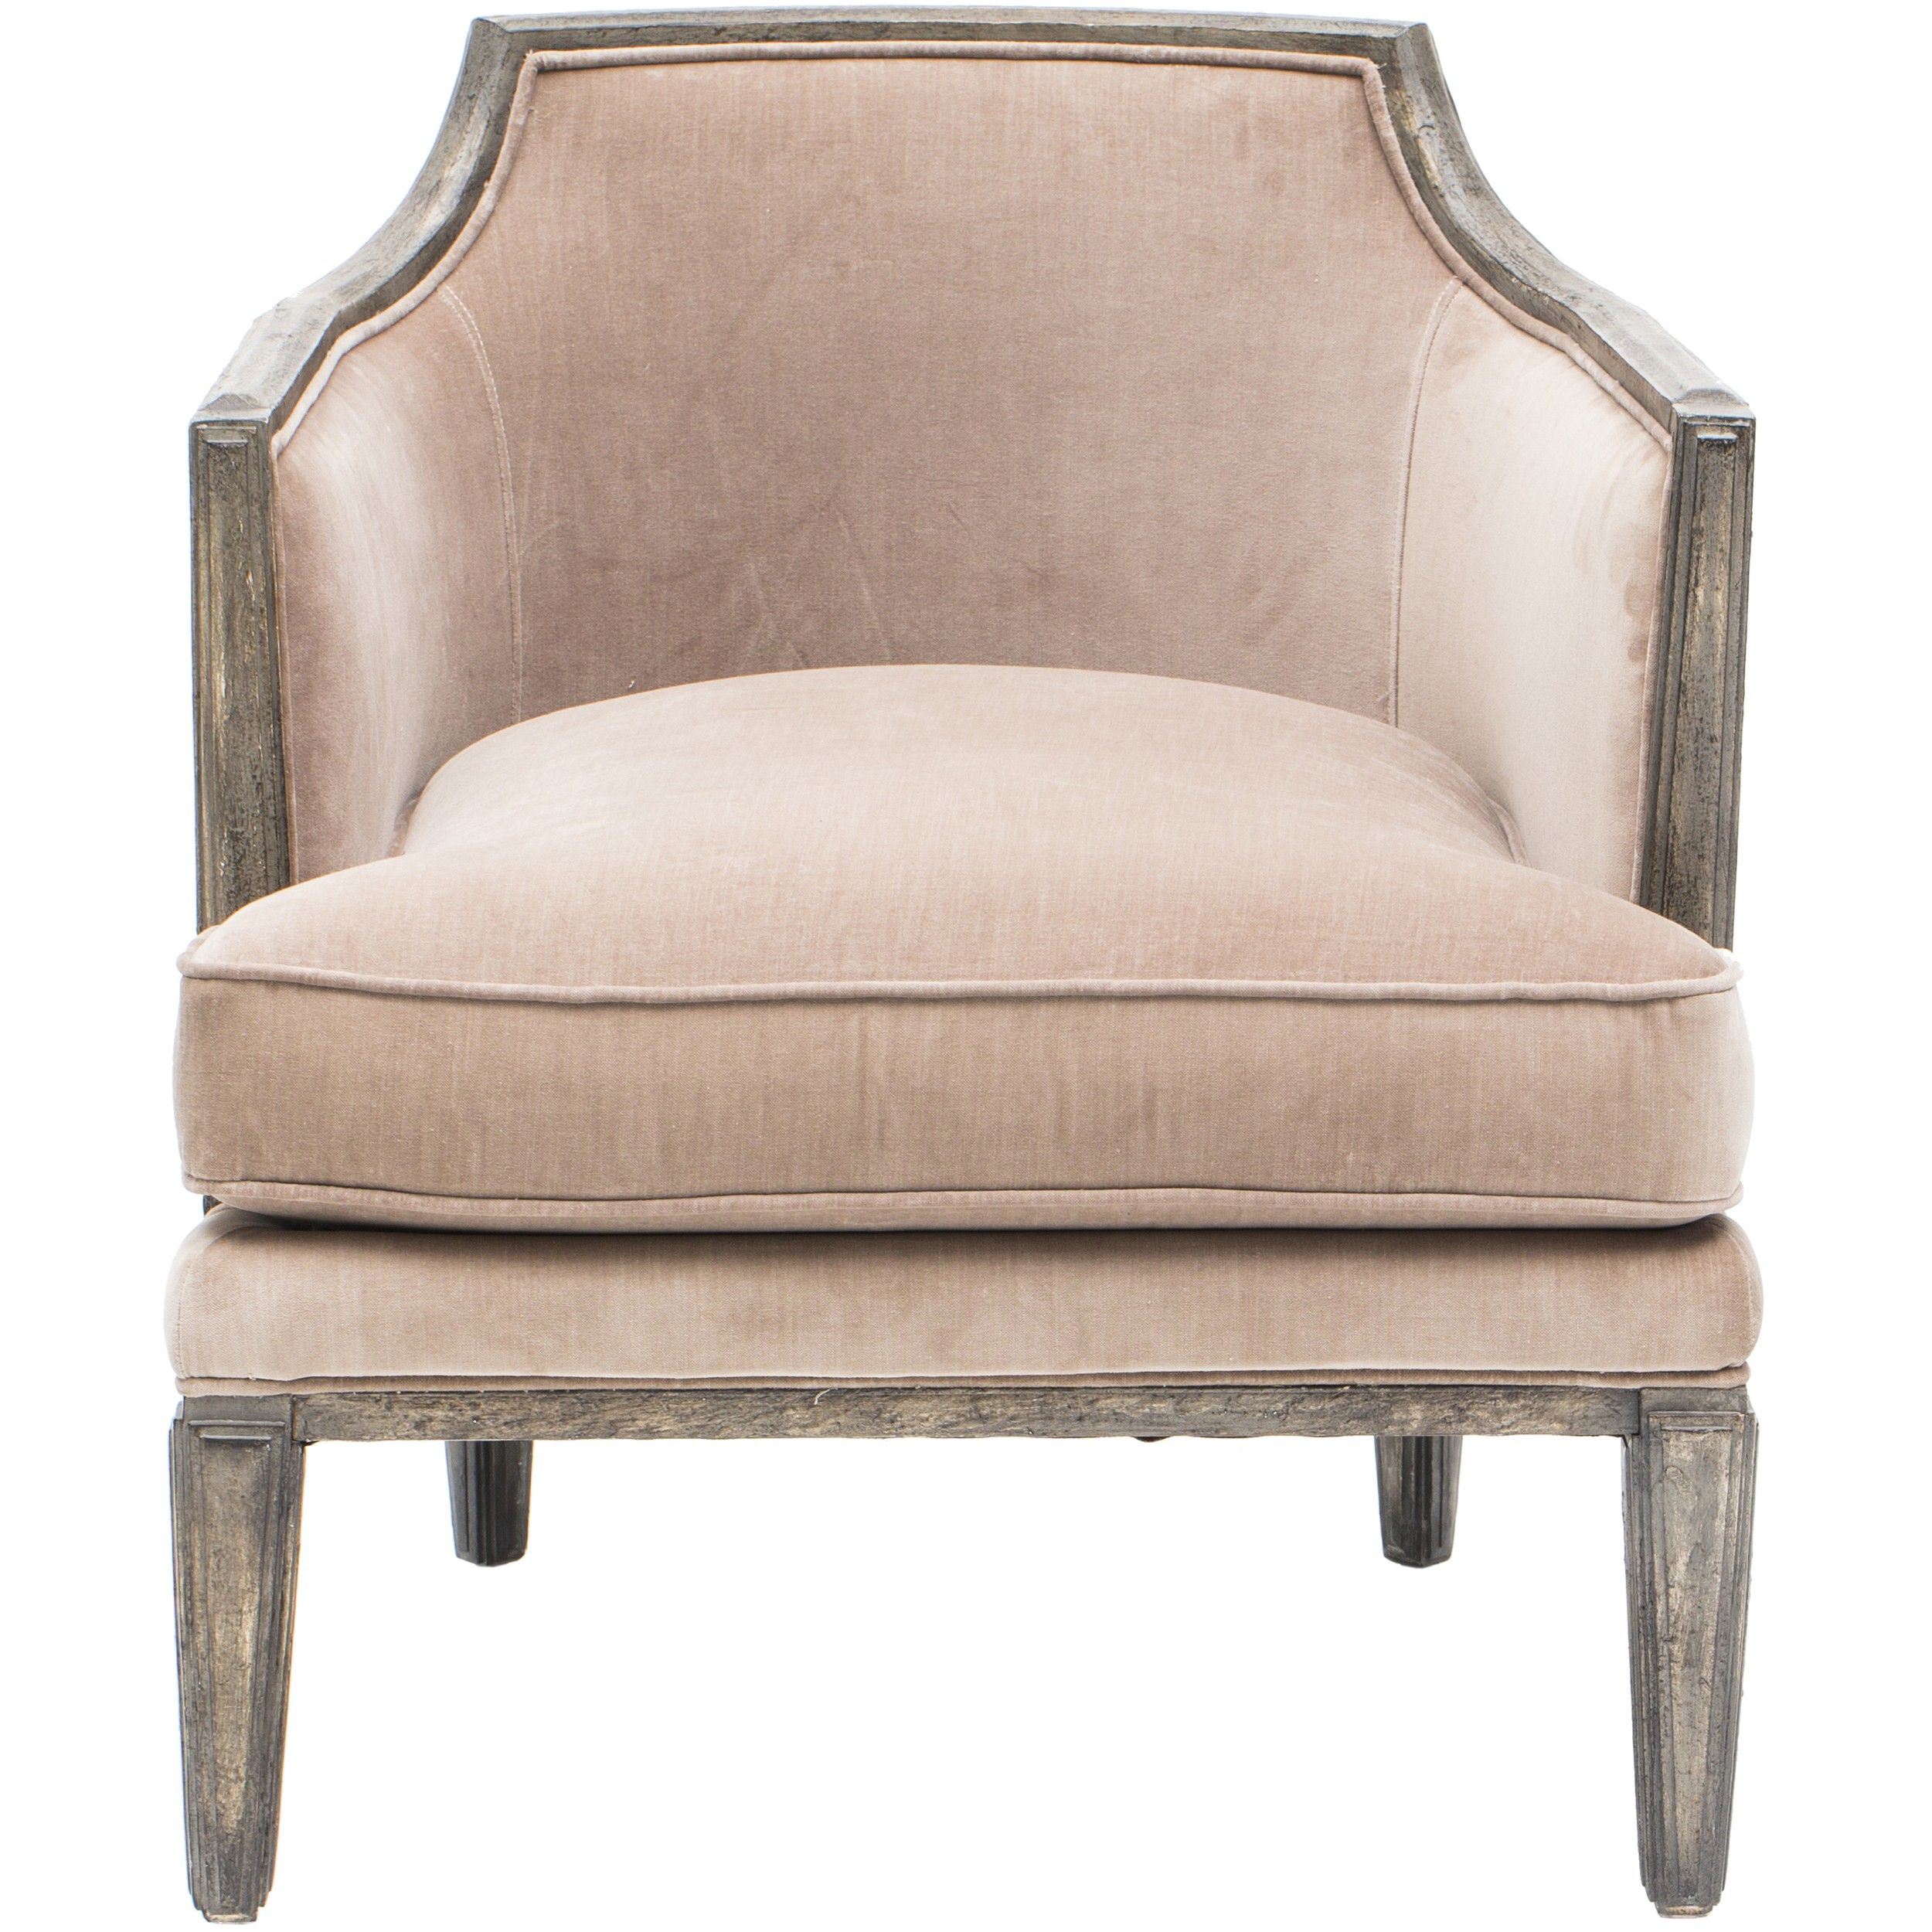 Virginia arm chair furniture chairs fabric best sellers